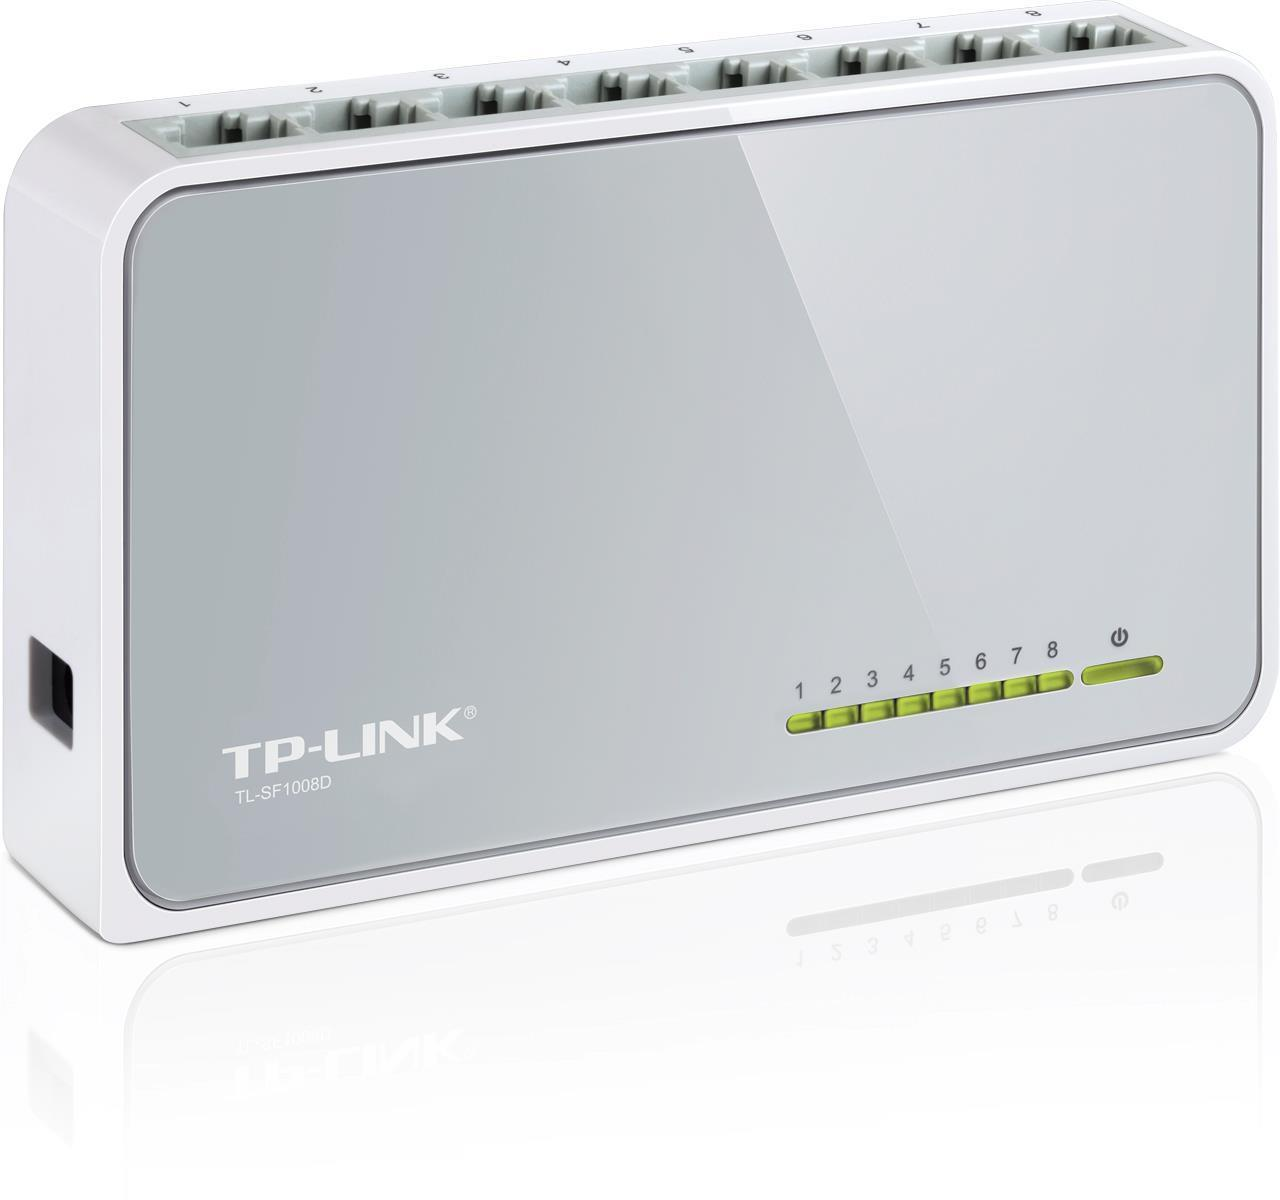 TP-Link 8 Port 10/100 Network Switch